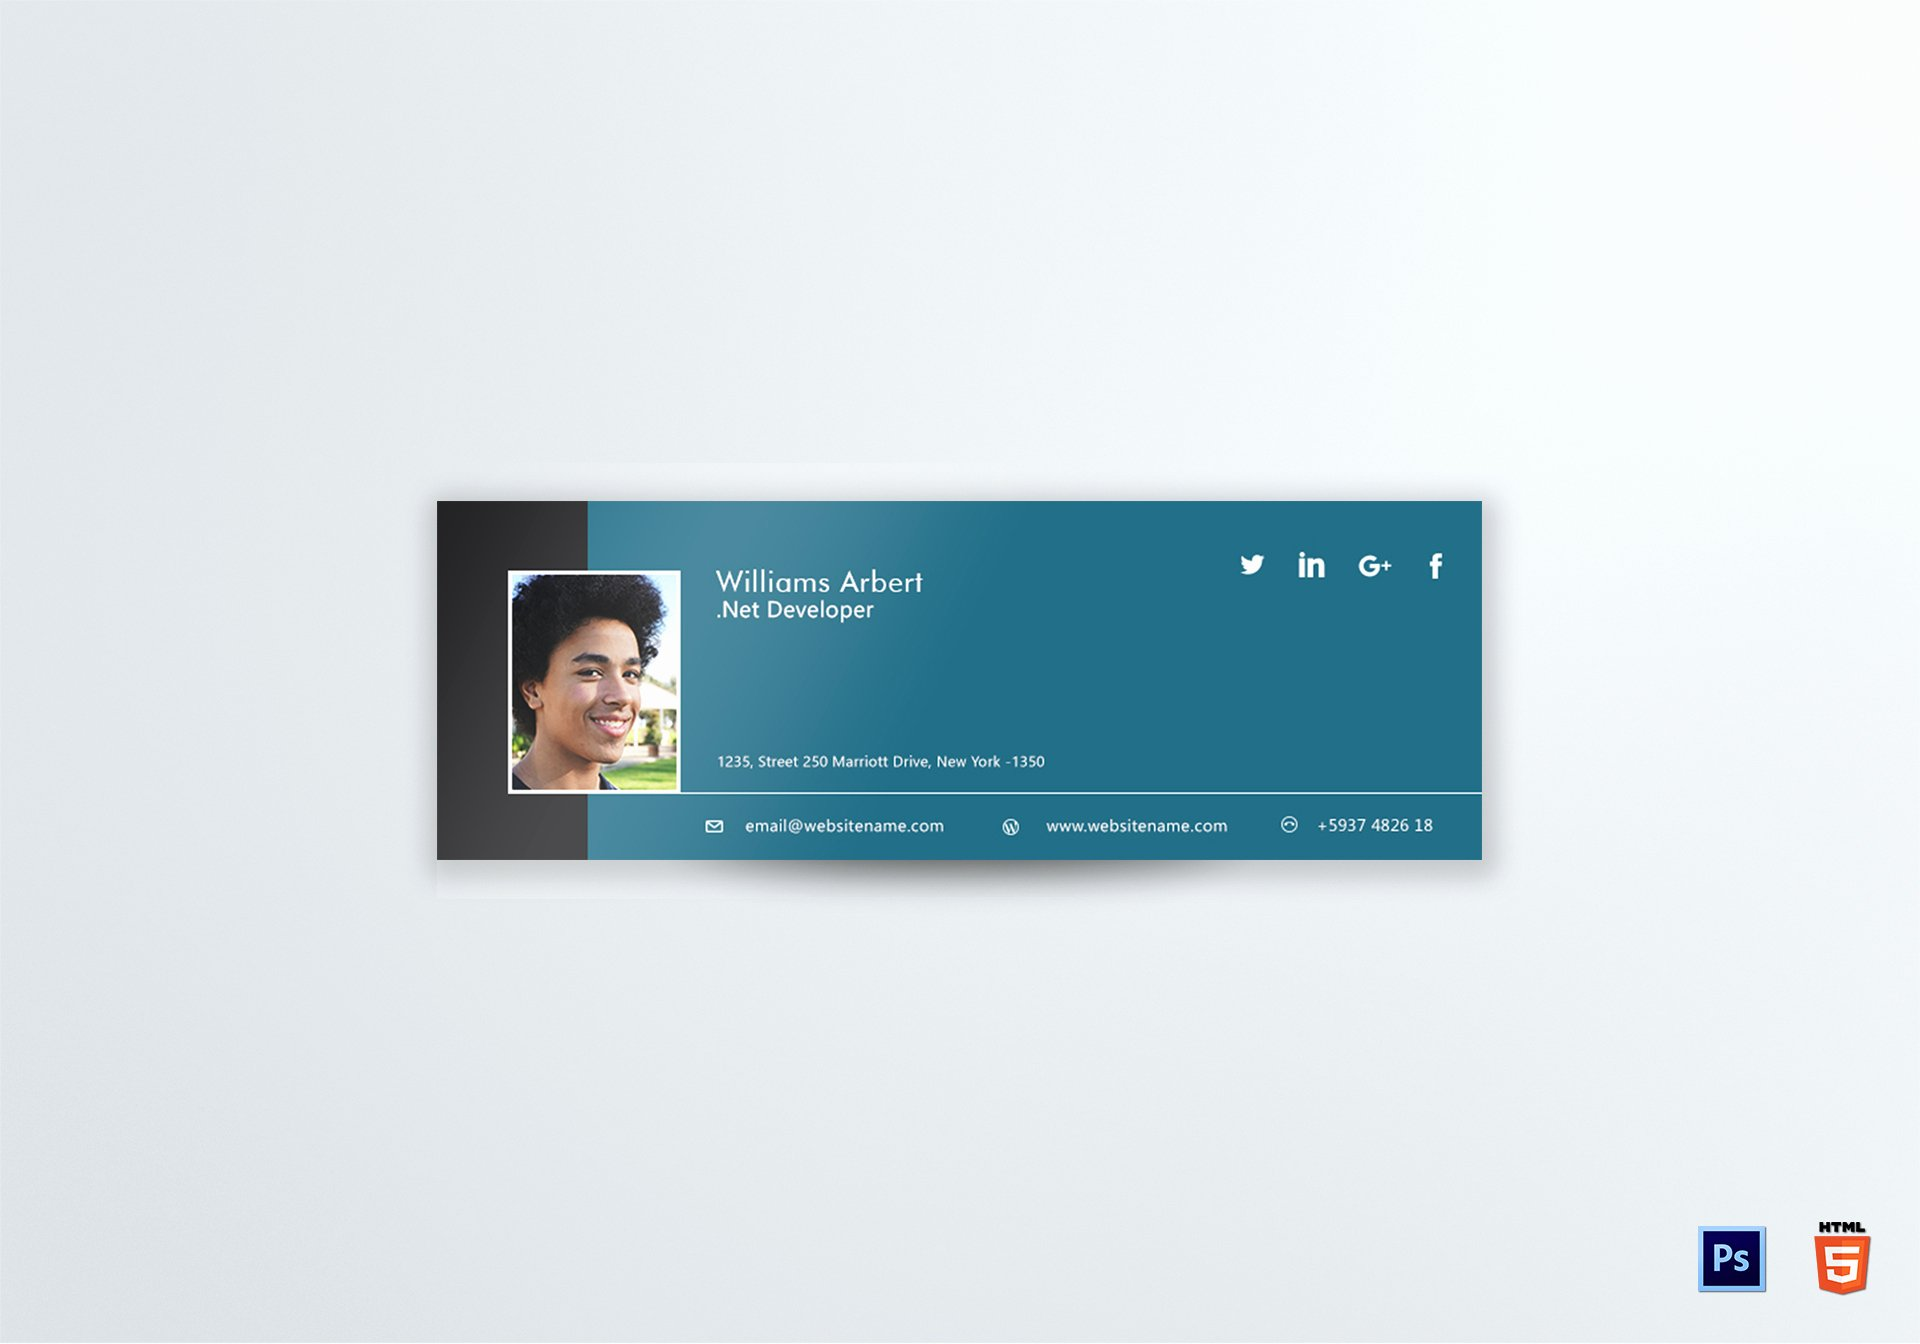 Html Email Signature Template Lovely Net Developer Email Signature Design Template In Psd HTML